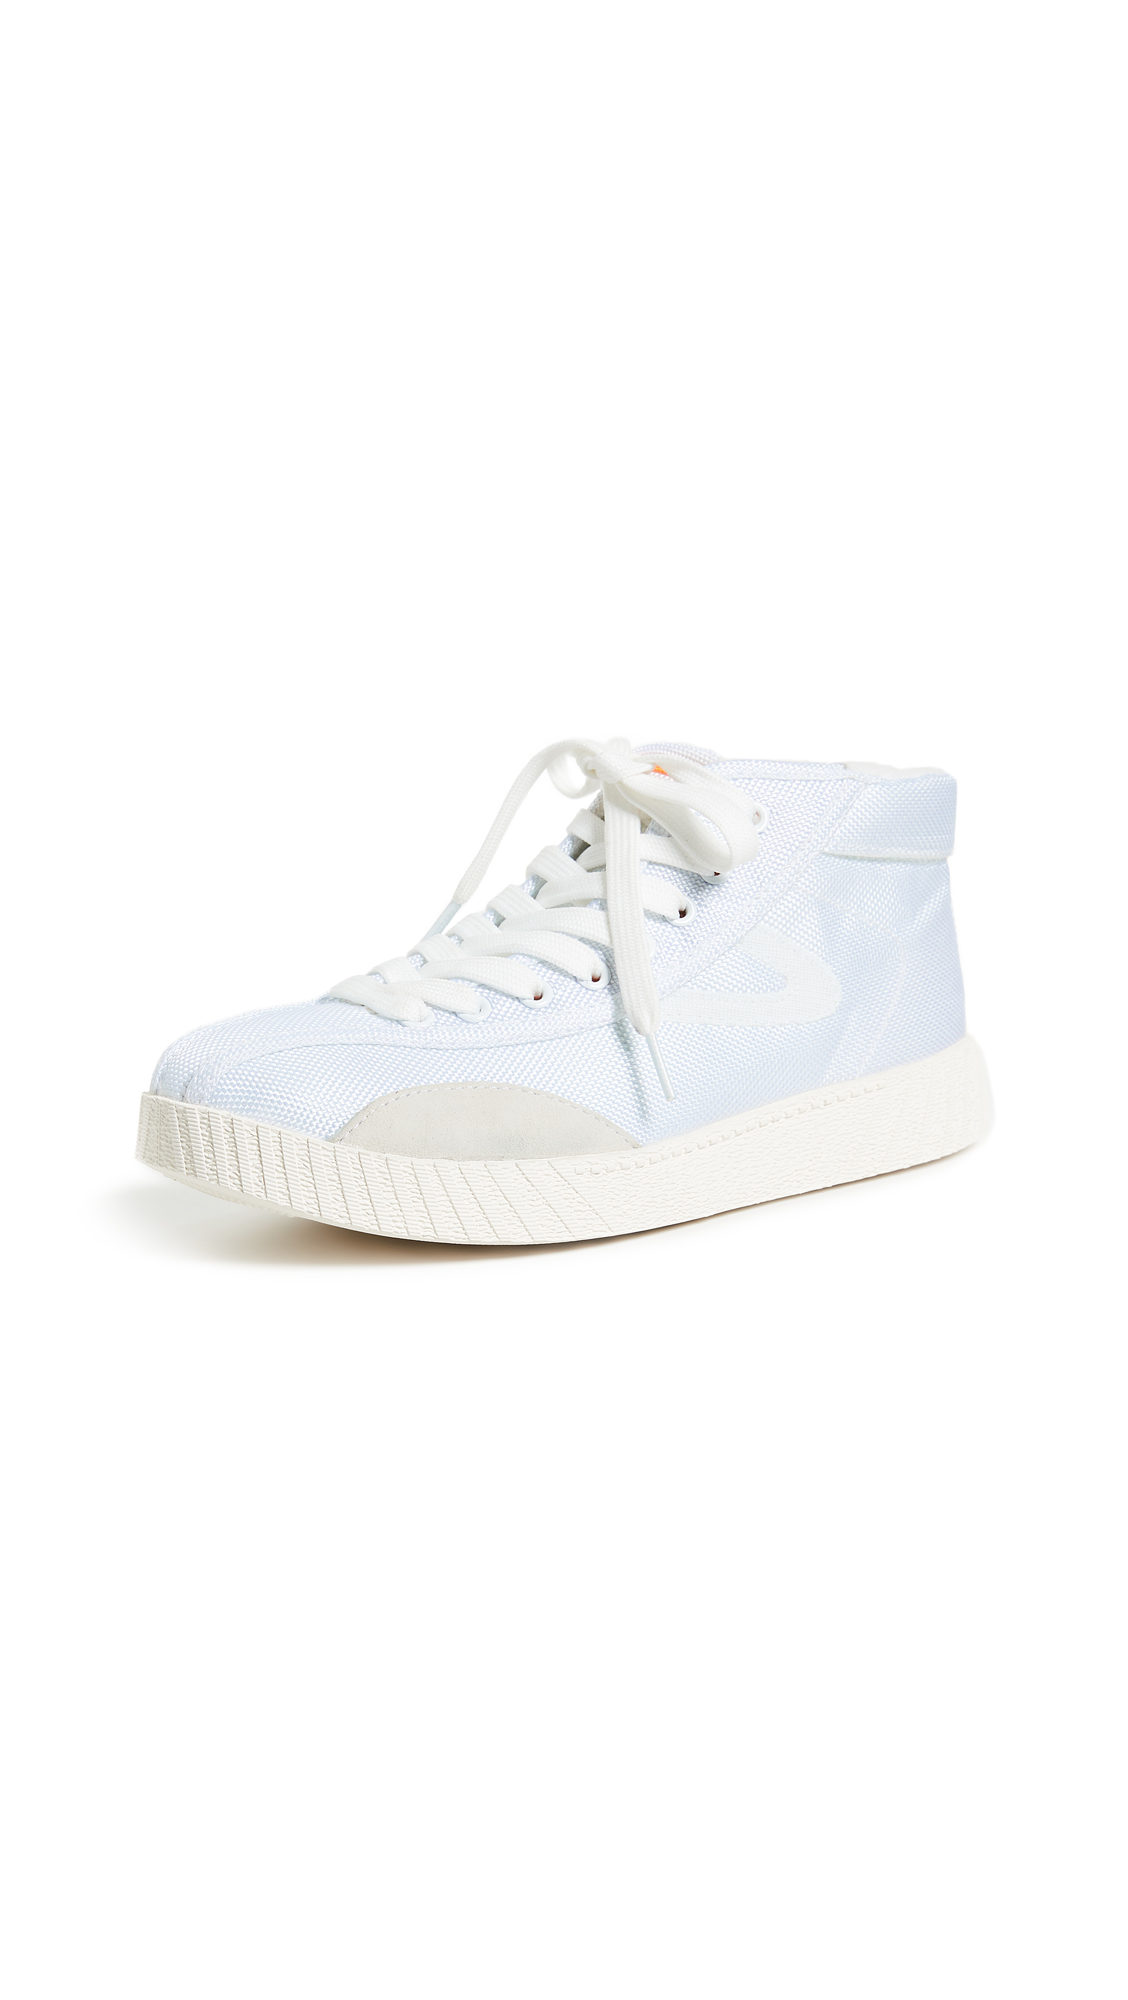 Tretorn x Andre 3000 High Top Sneakers - White